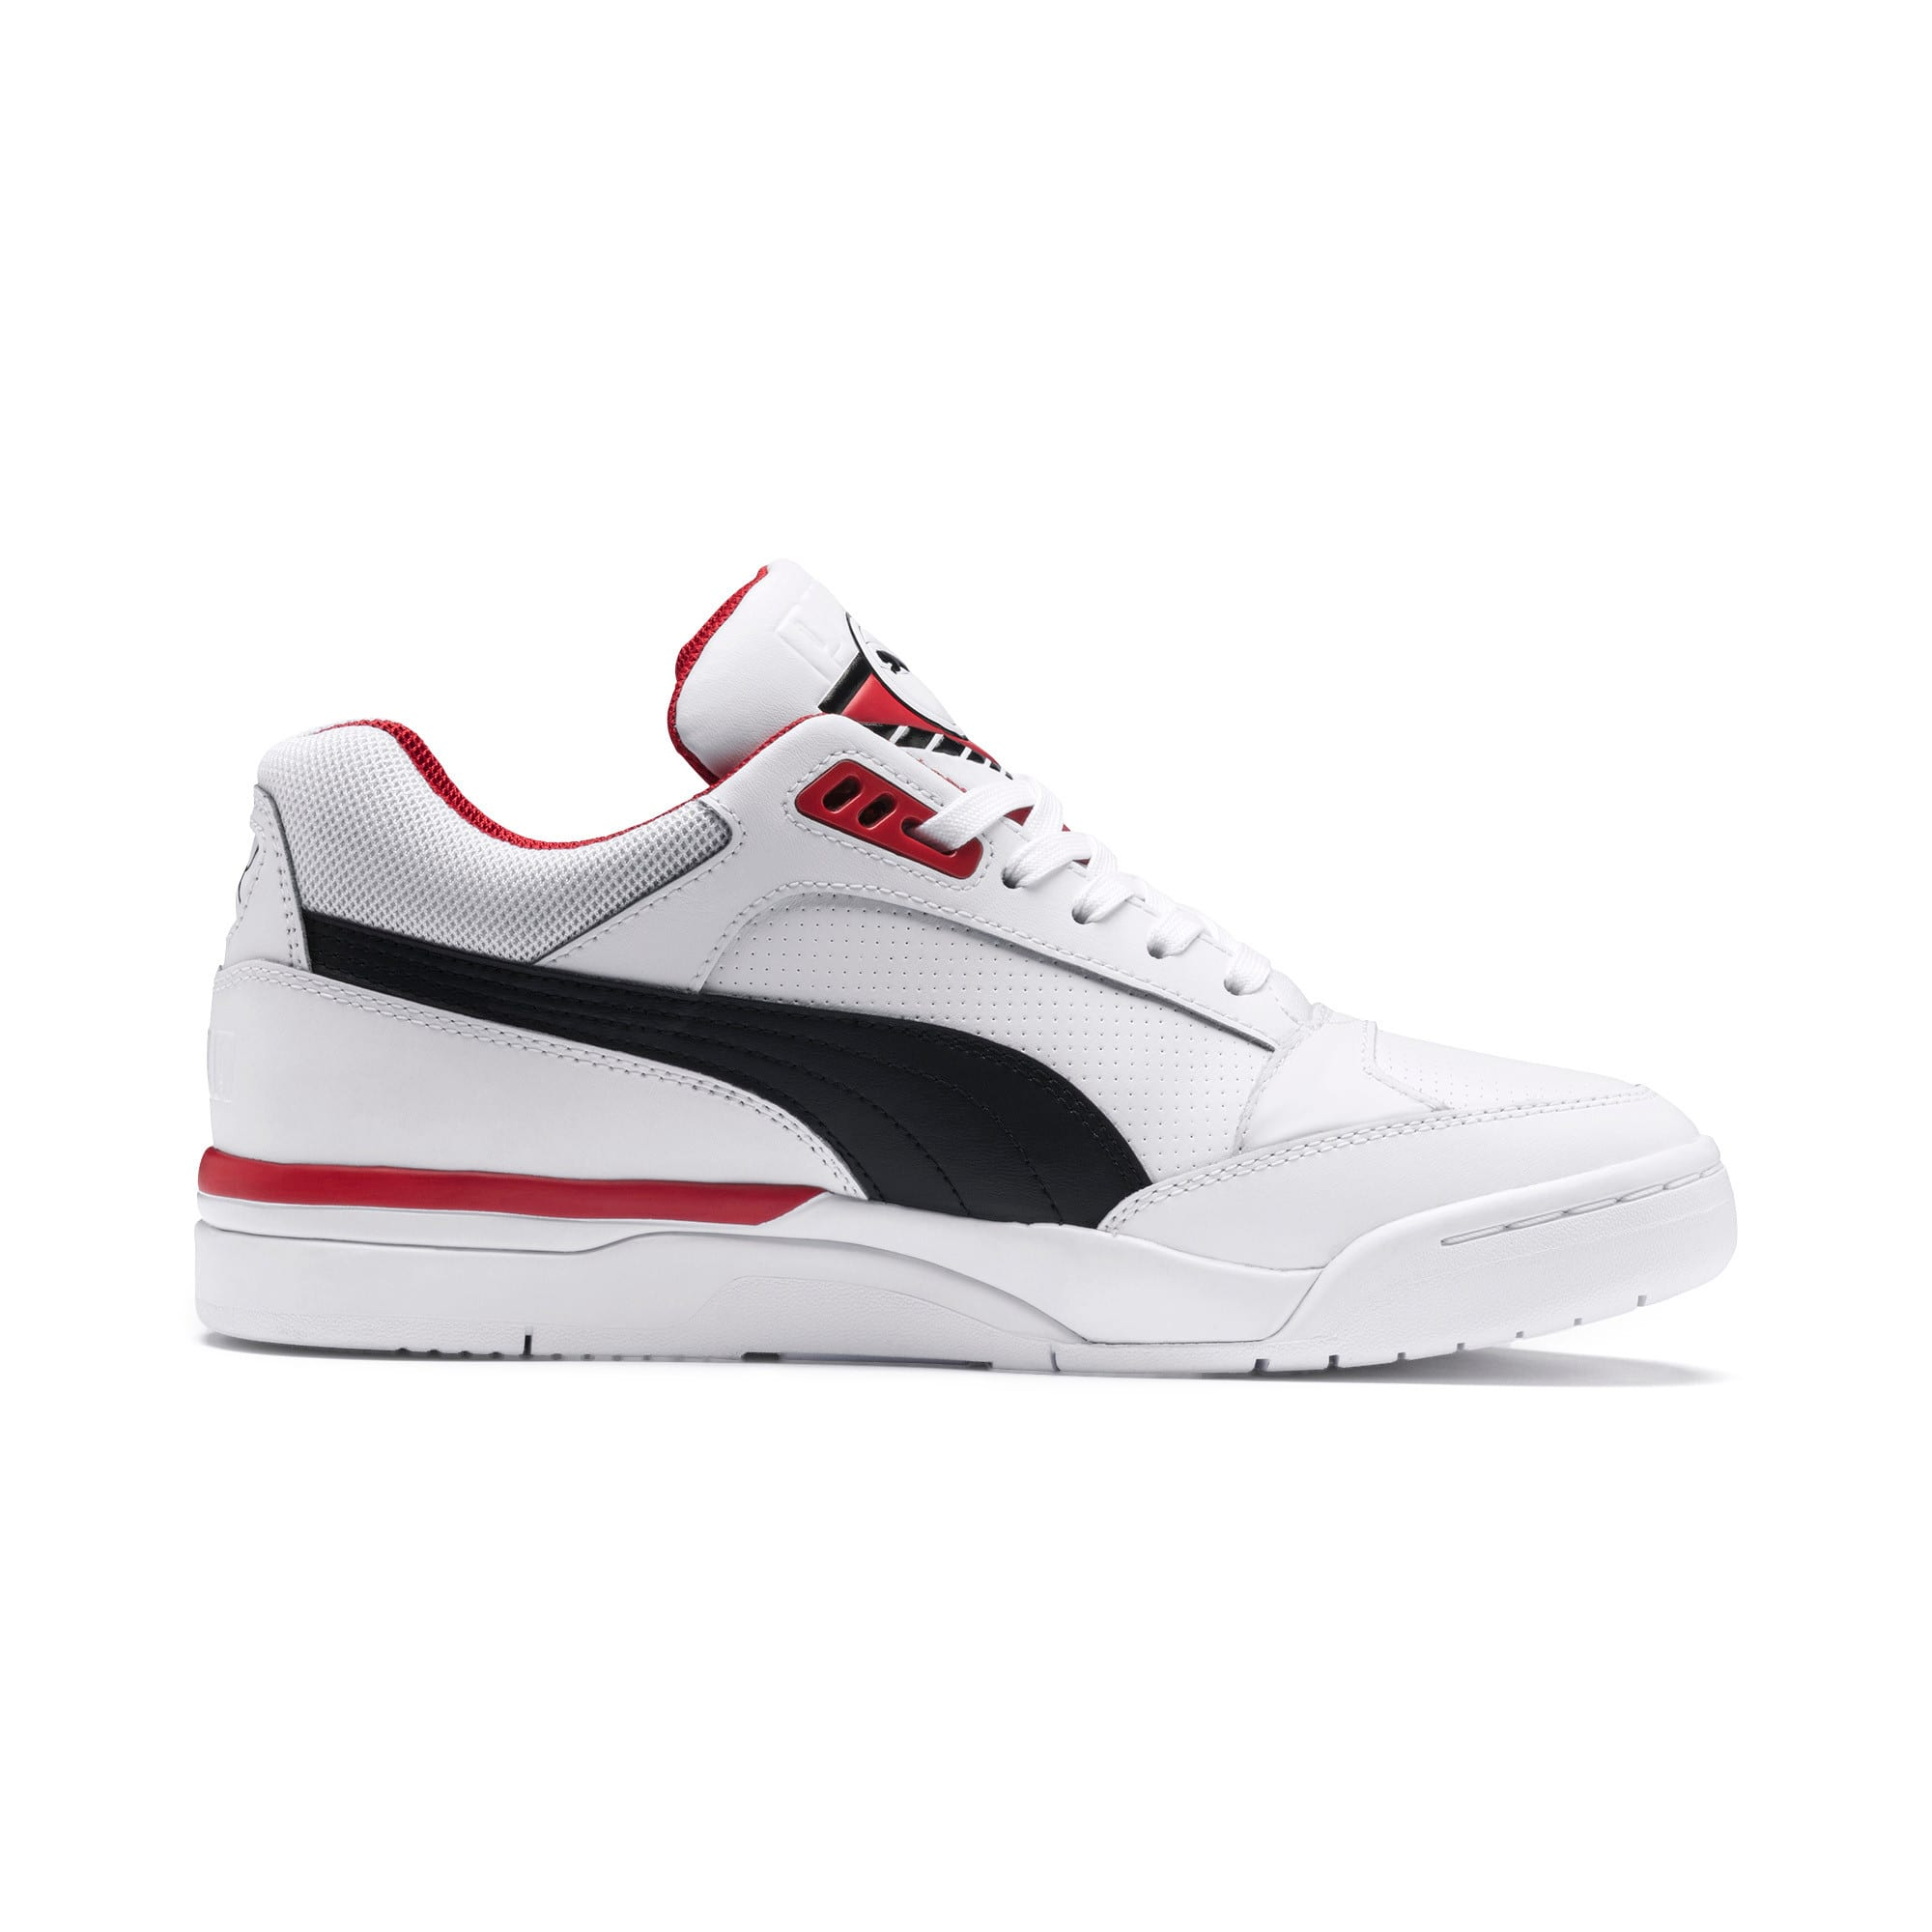 Palace Guard basketbalschoenen voor heren, Puma White-Puma Black-red, large